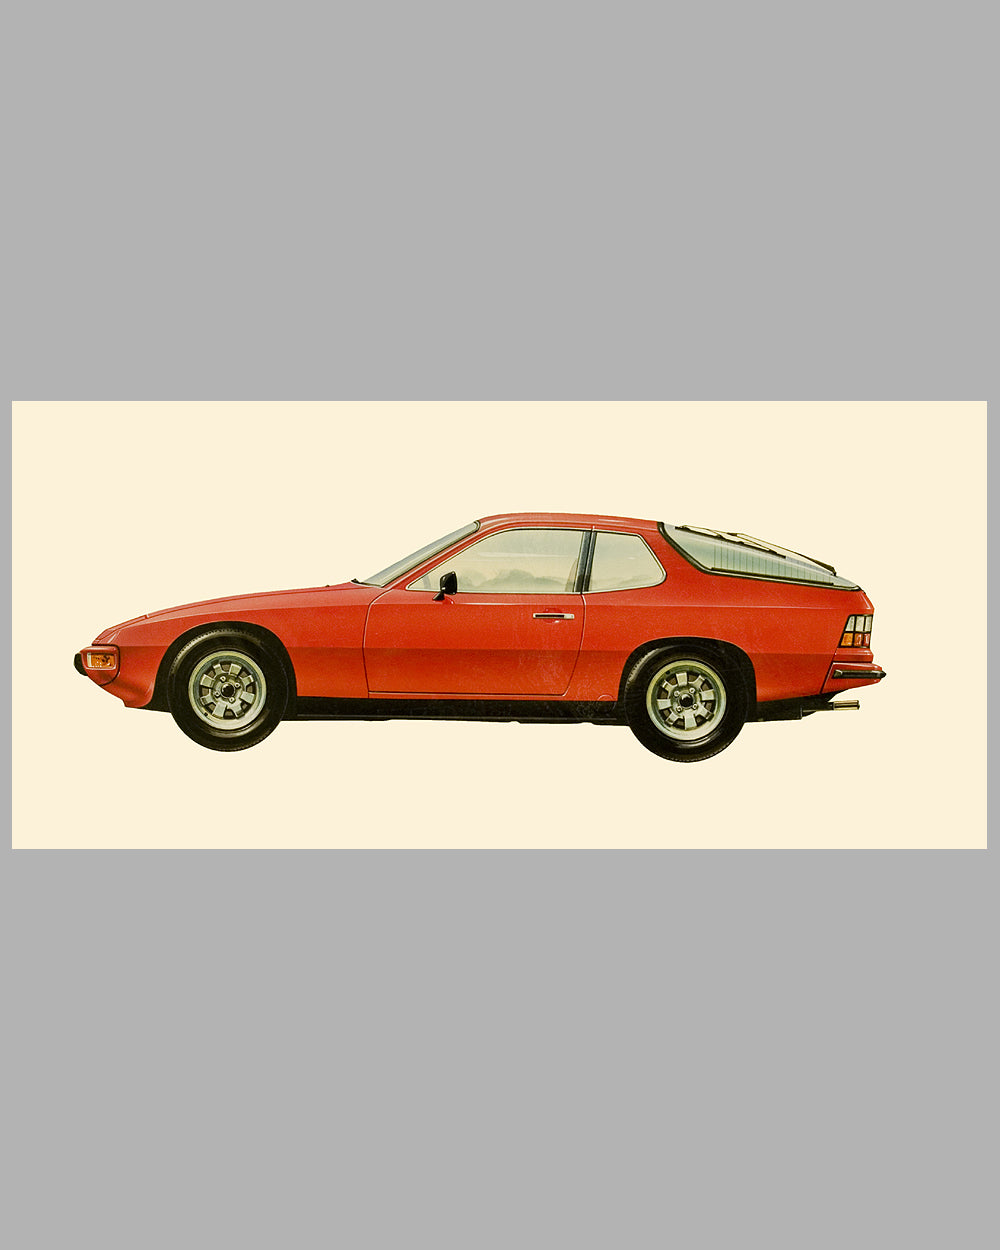 1976 Porsche 924 Coupe painting by Ken Rush, USA, 1984, gouache on board